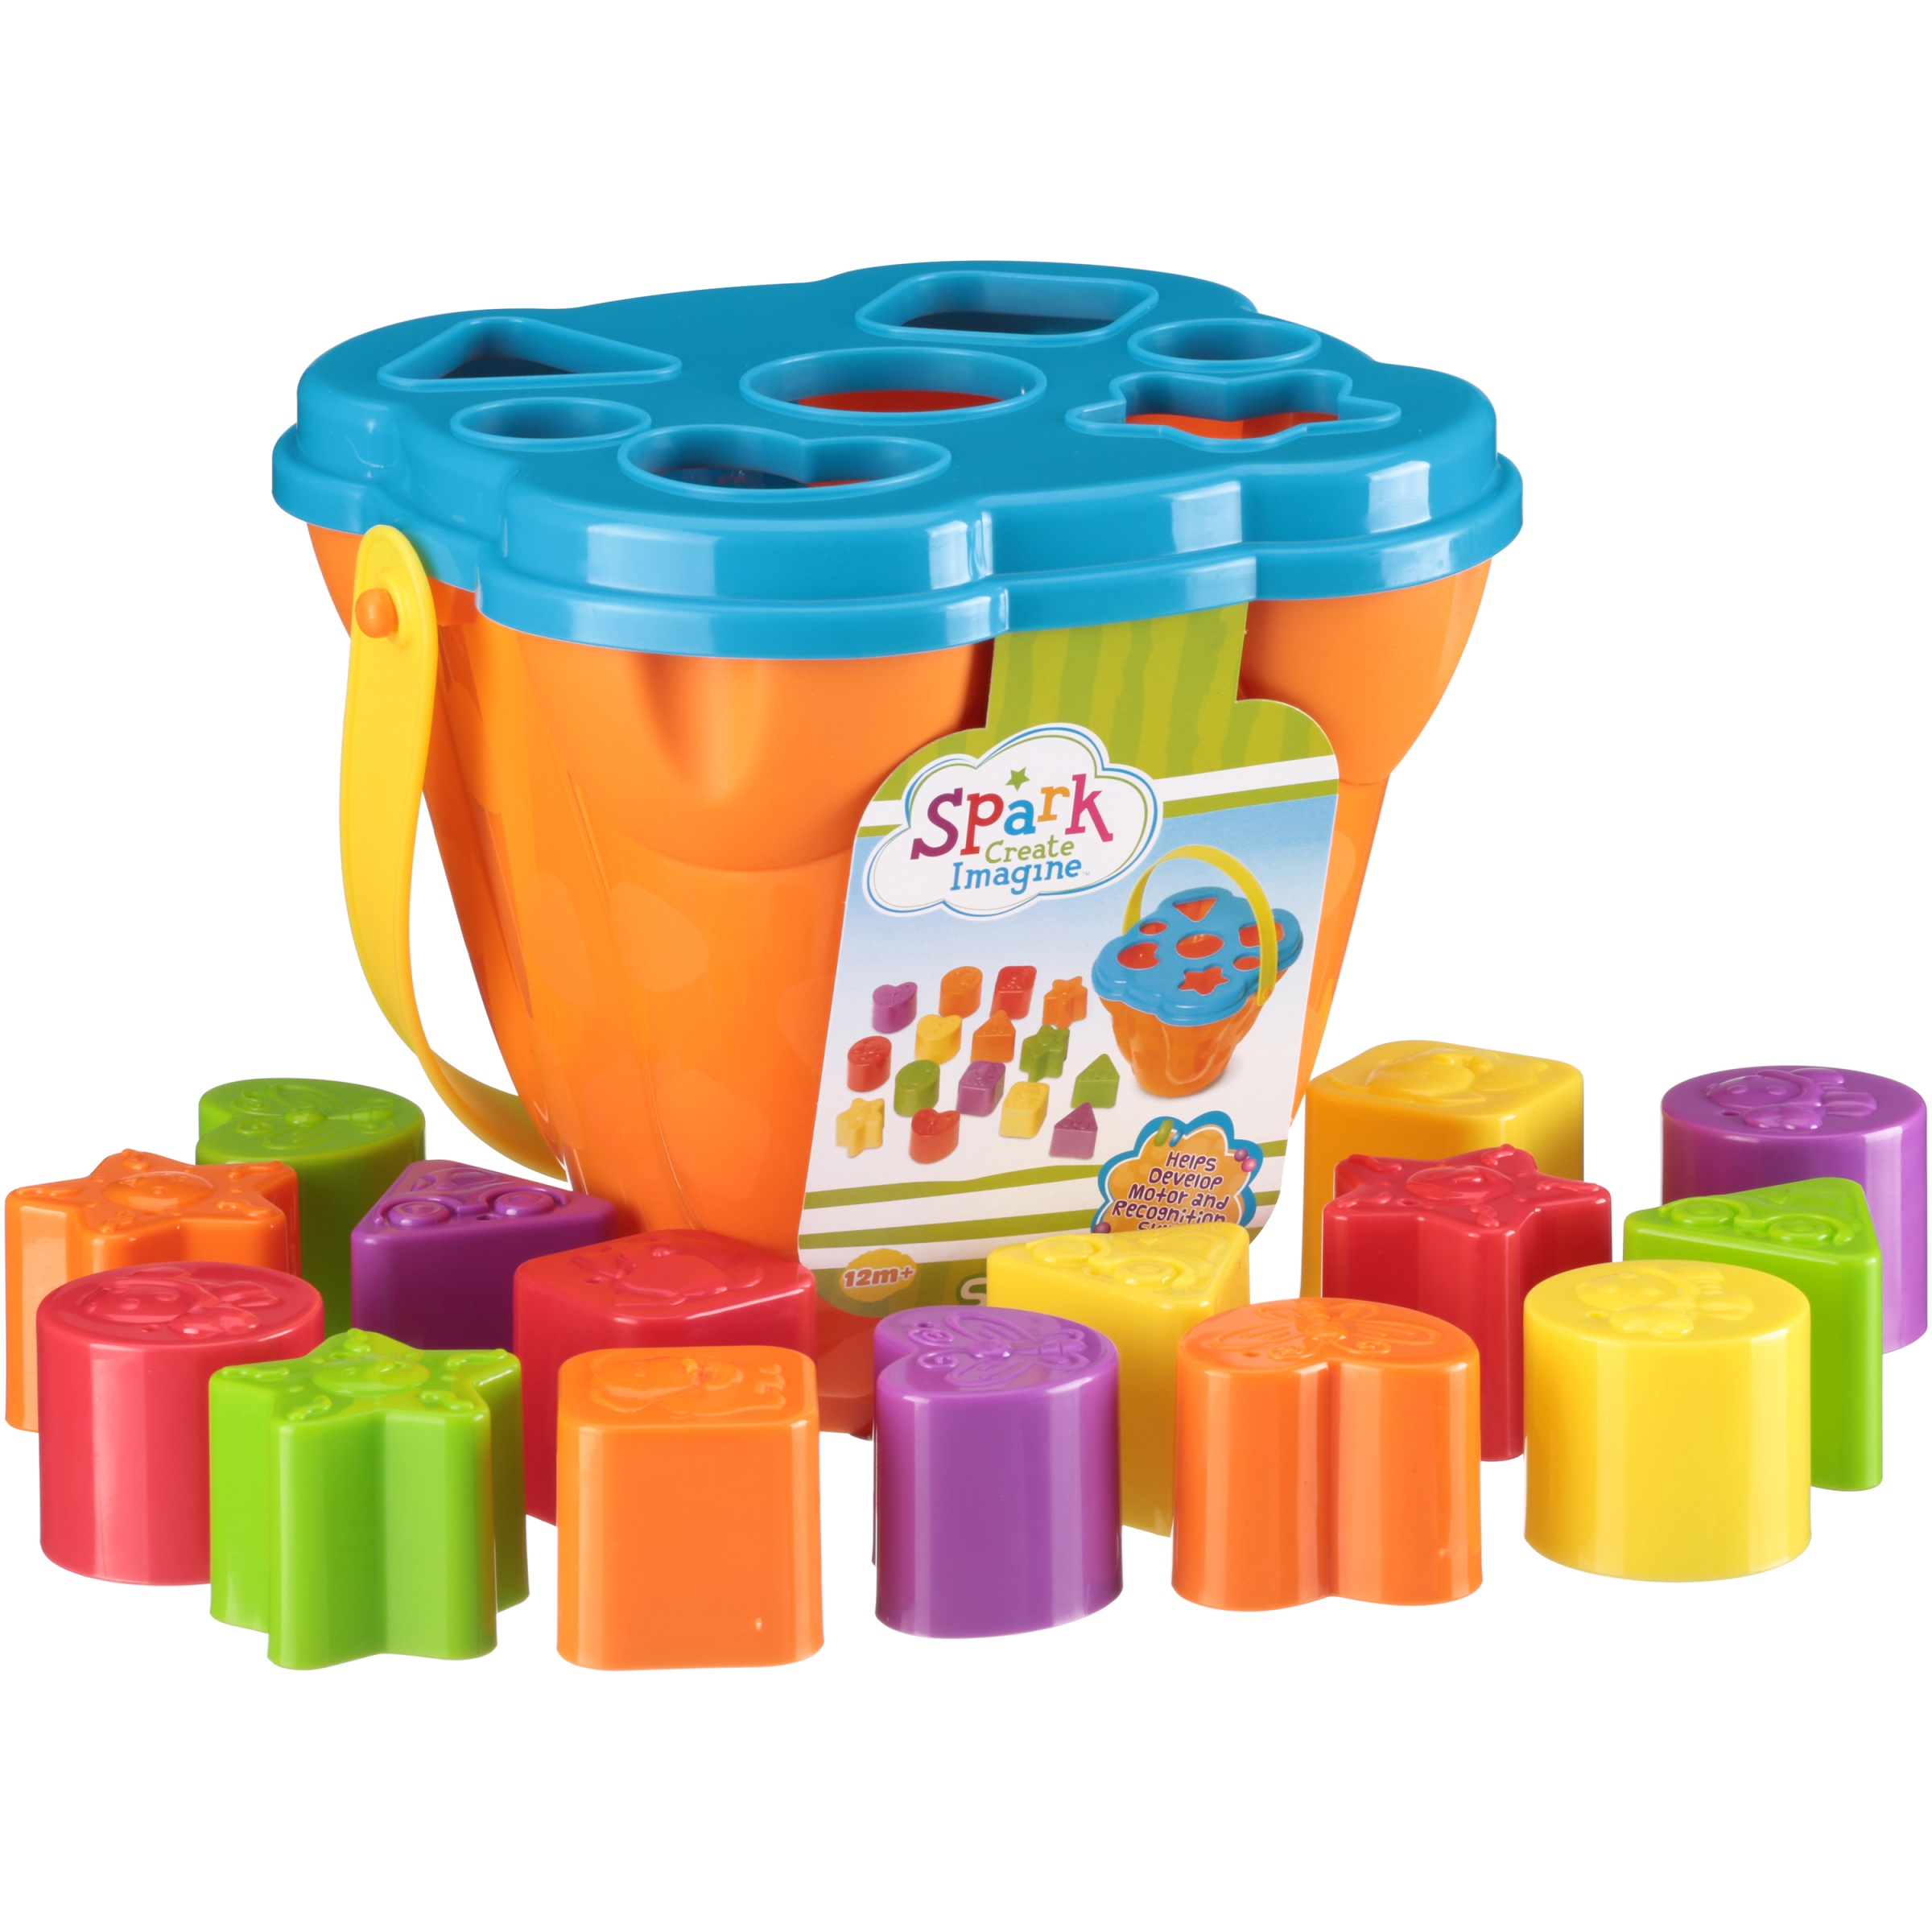 Spark. Create. Imagine. 15-Piece Shape Sorter, Vividly Colored